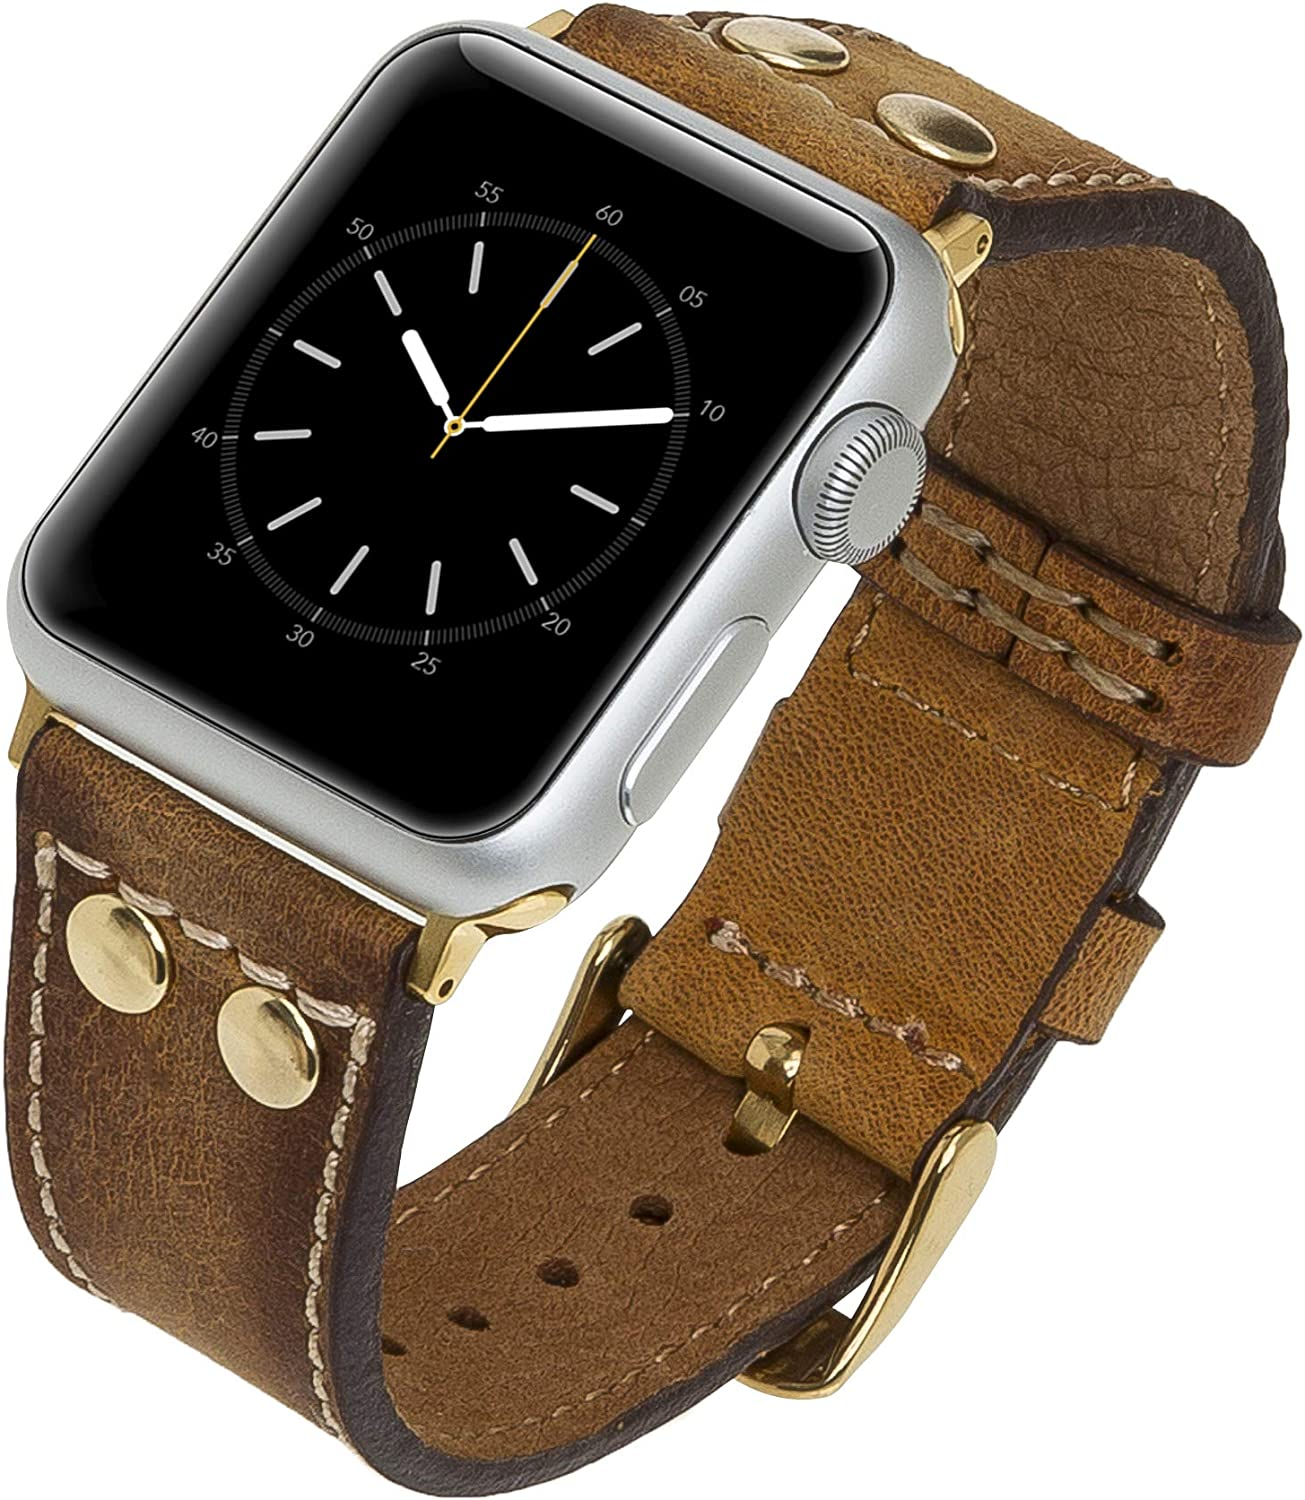 Venito Como Handmade Premium Leather Watch Band Compatible with the Newest Apple Watch iwatch Series 6 as well as Series 1, 2, 3, 4, 5 (Antique Brown w/ Gold Stainless Steel Hardware, 38mm-40mm)